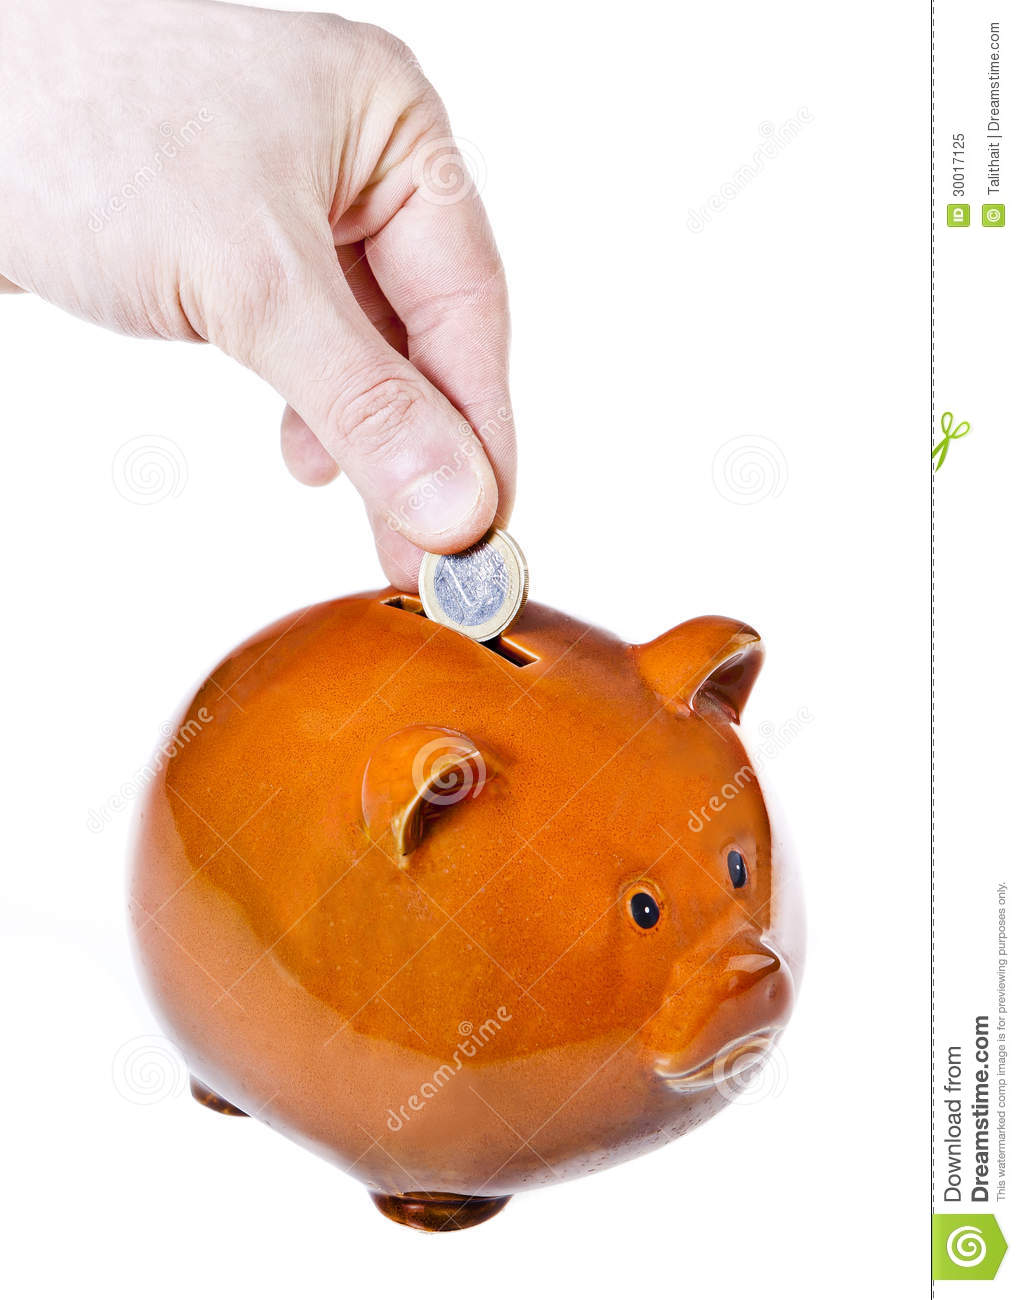 hand putting euro coin into piggy bank on white background